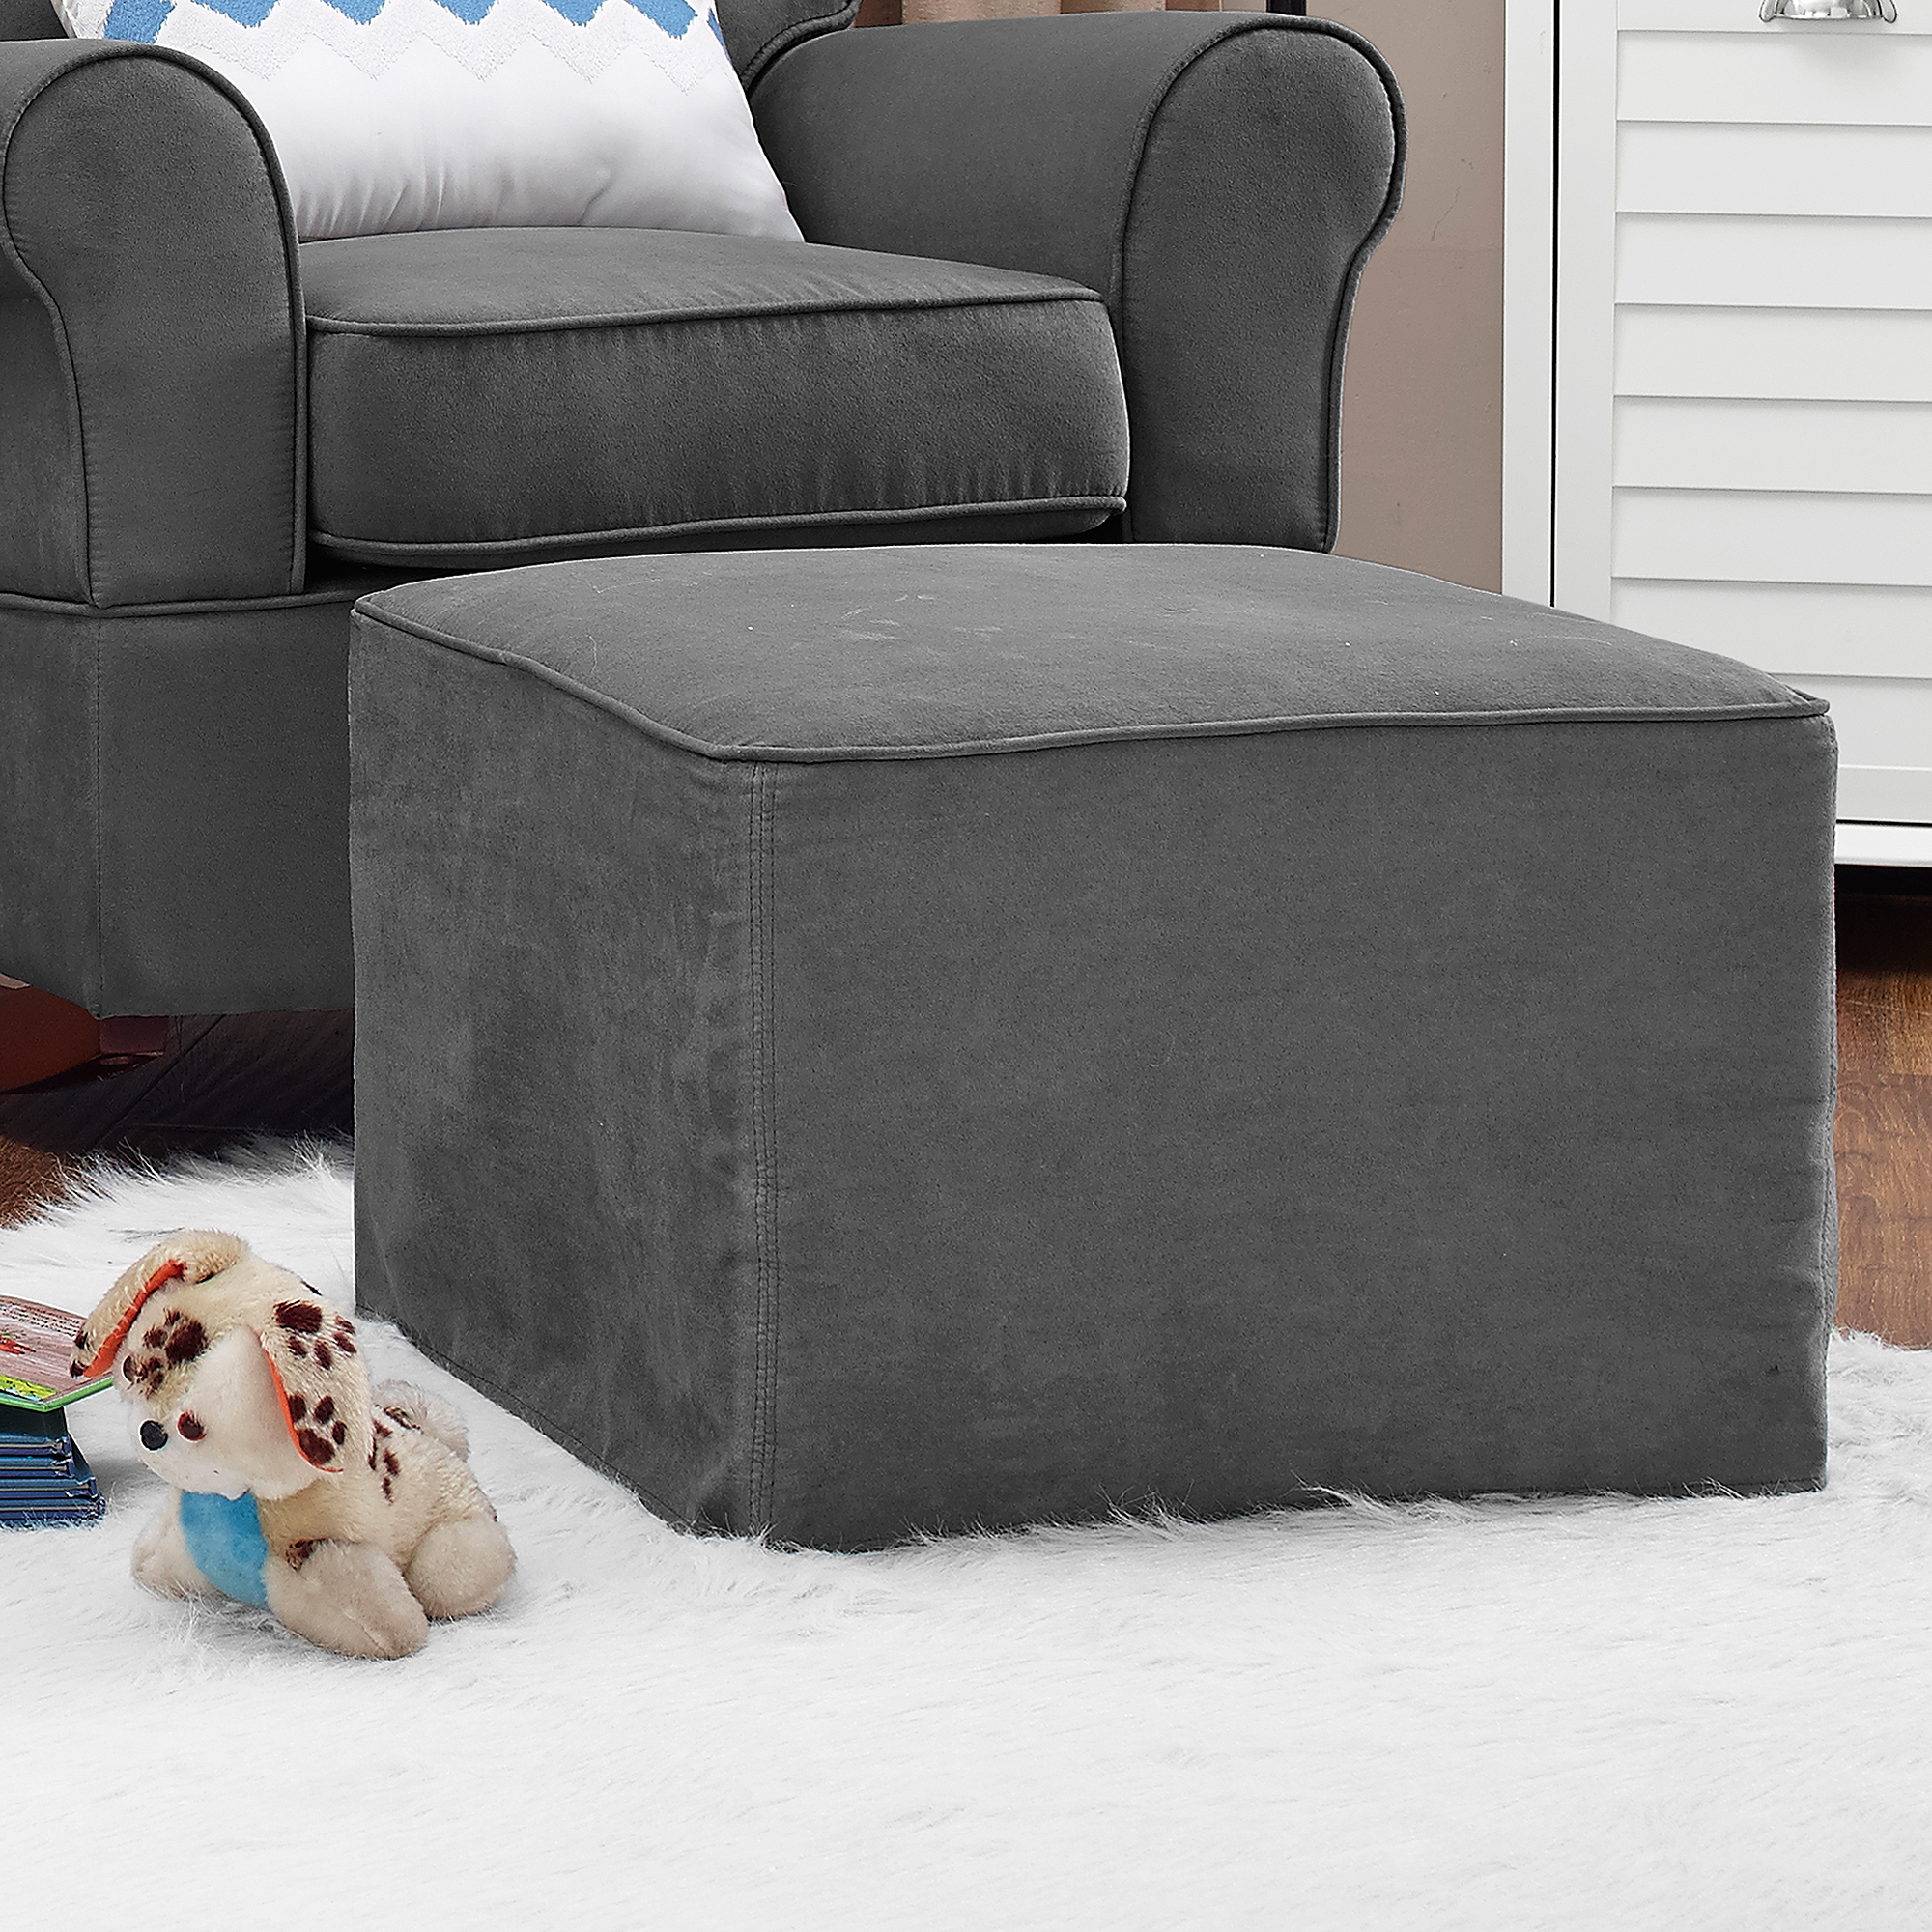 Baby Relax Mackenzie Ottoman, Choose Your Color by Dorel Living Inc.